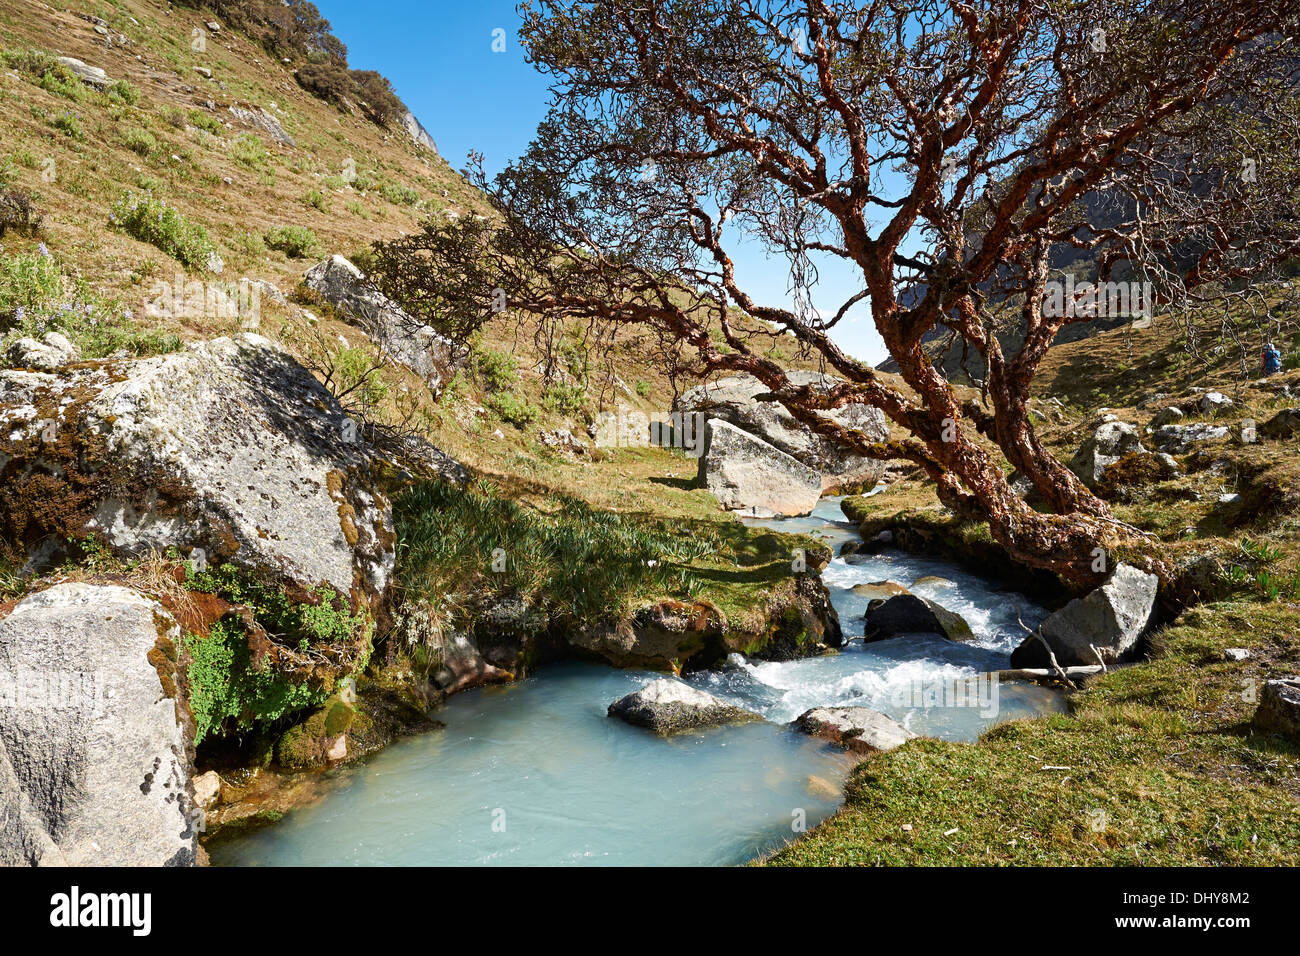 A river running though the Llaca valley in the Peruvian Andes, South America. - Stock Image